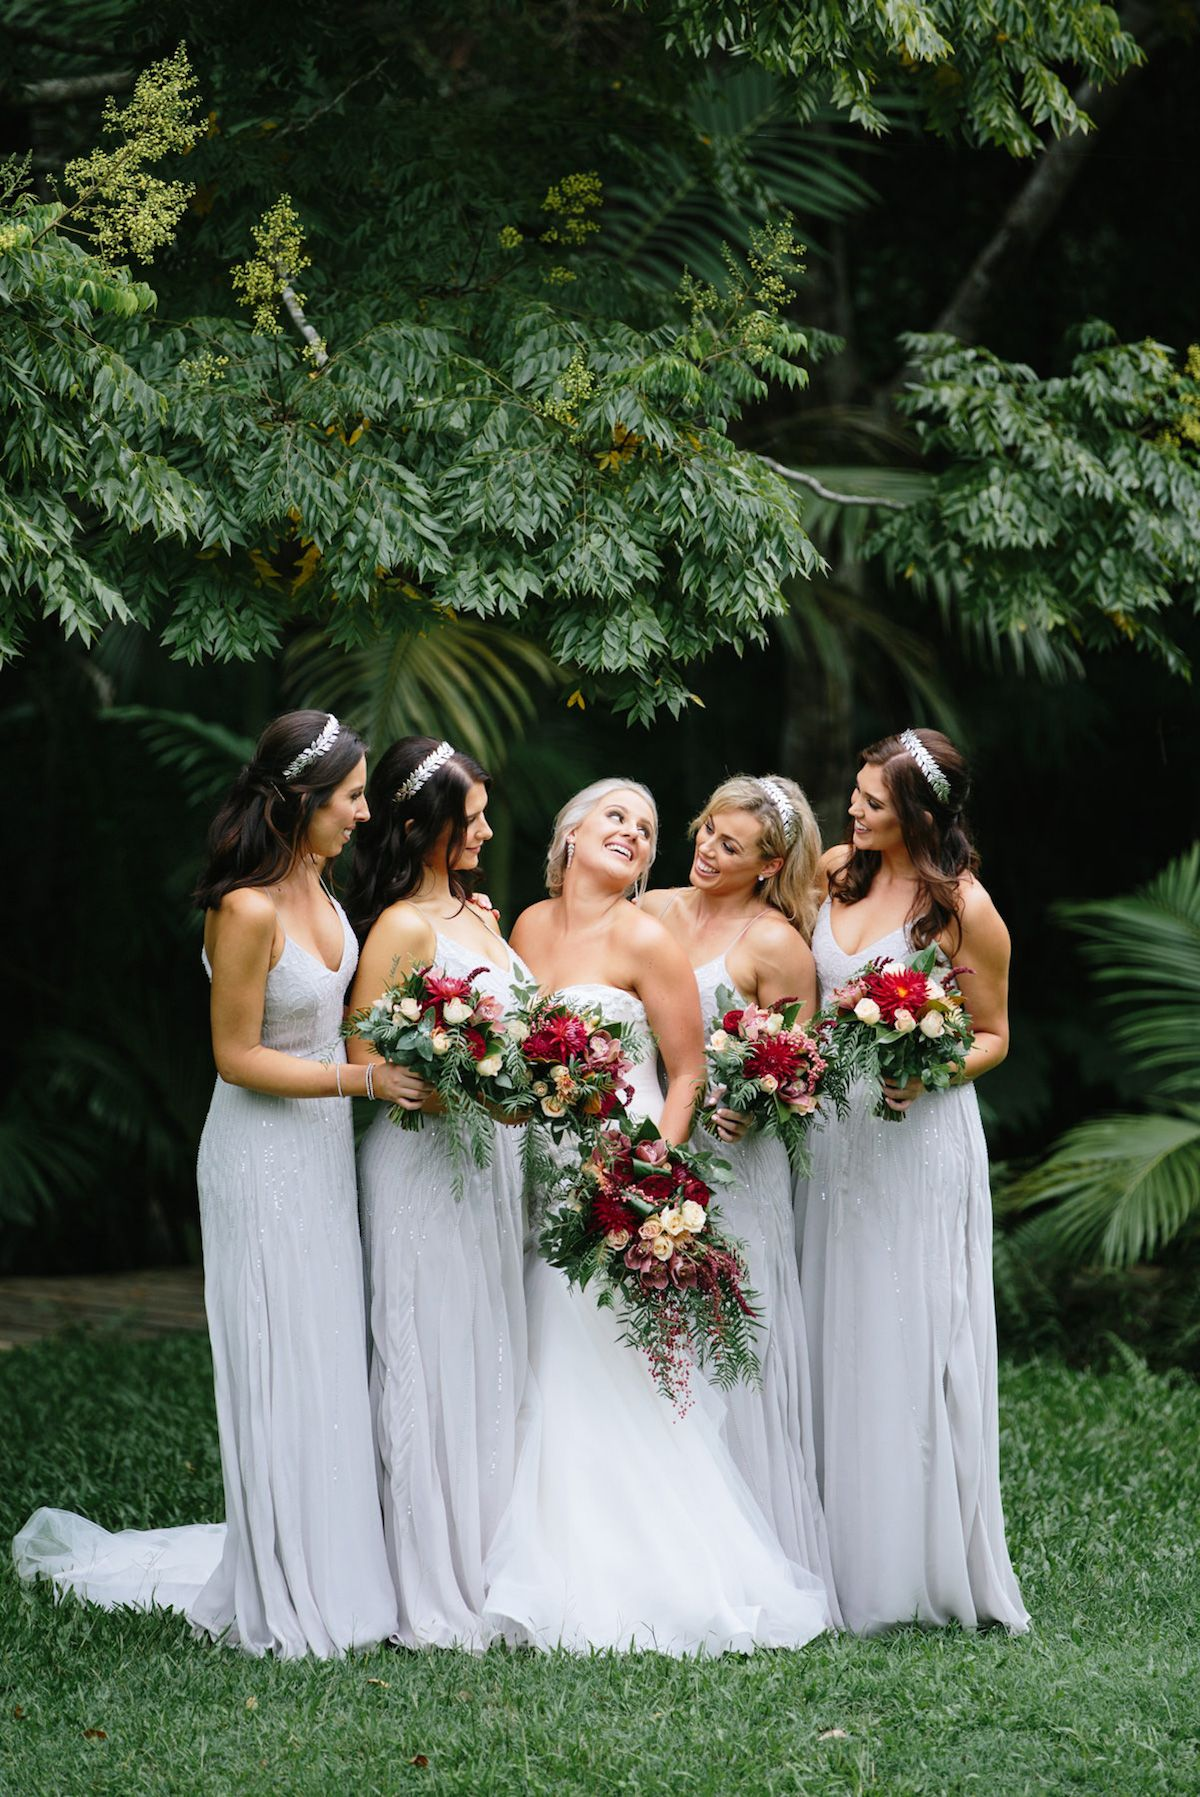 4 Reasons to Consider a Winter Wedding